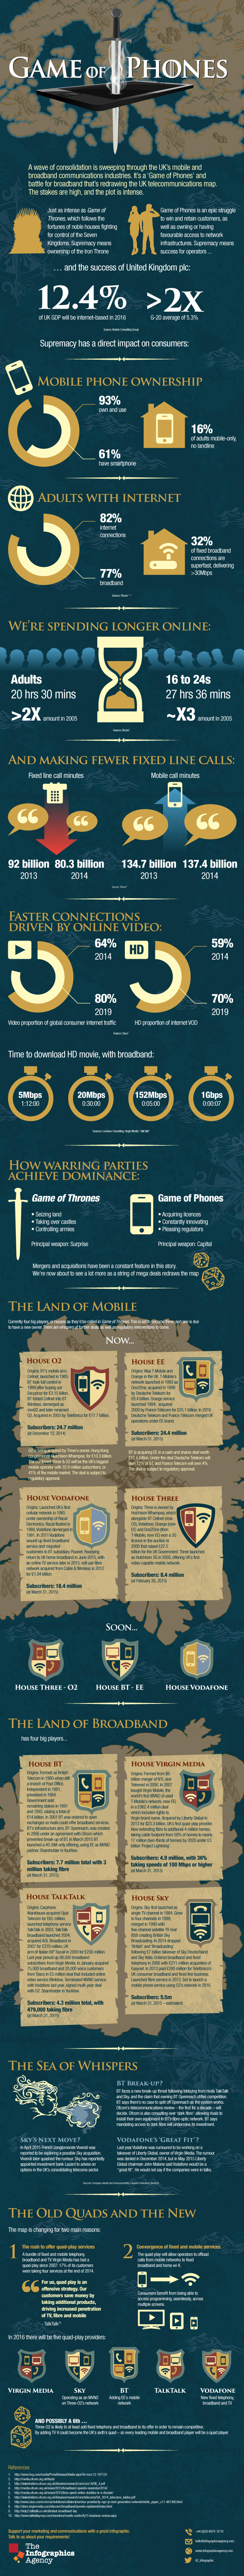 Game-of-Phones-03062015a